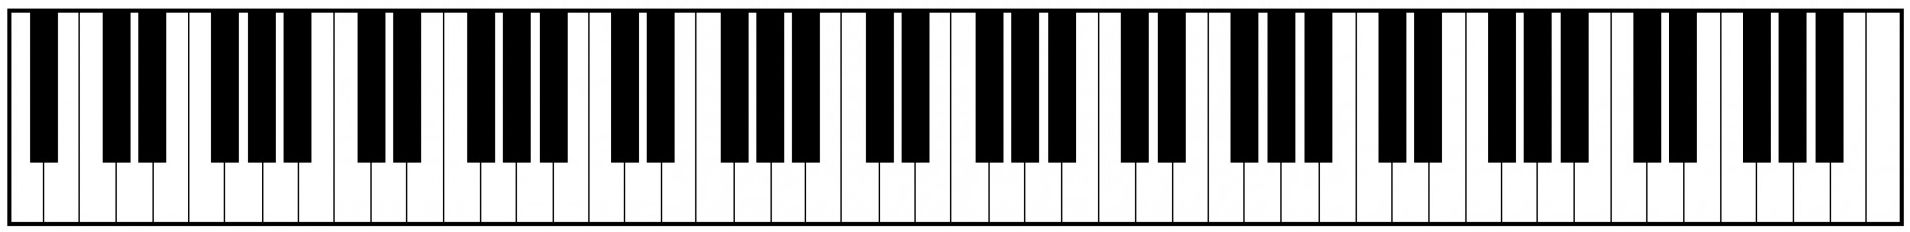 Vertical piano keys clipart clip black and white Kata Stats: Piano Kata, Part 1 | Codewars clip black and white